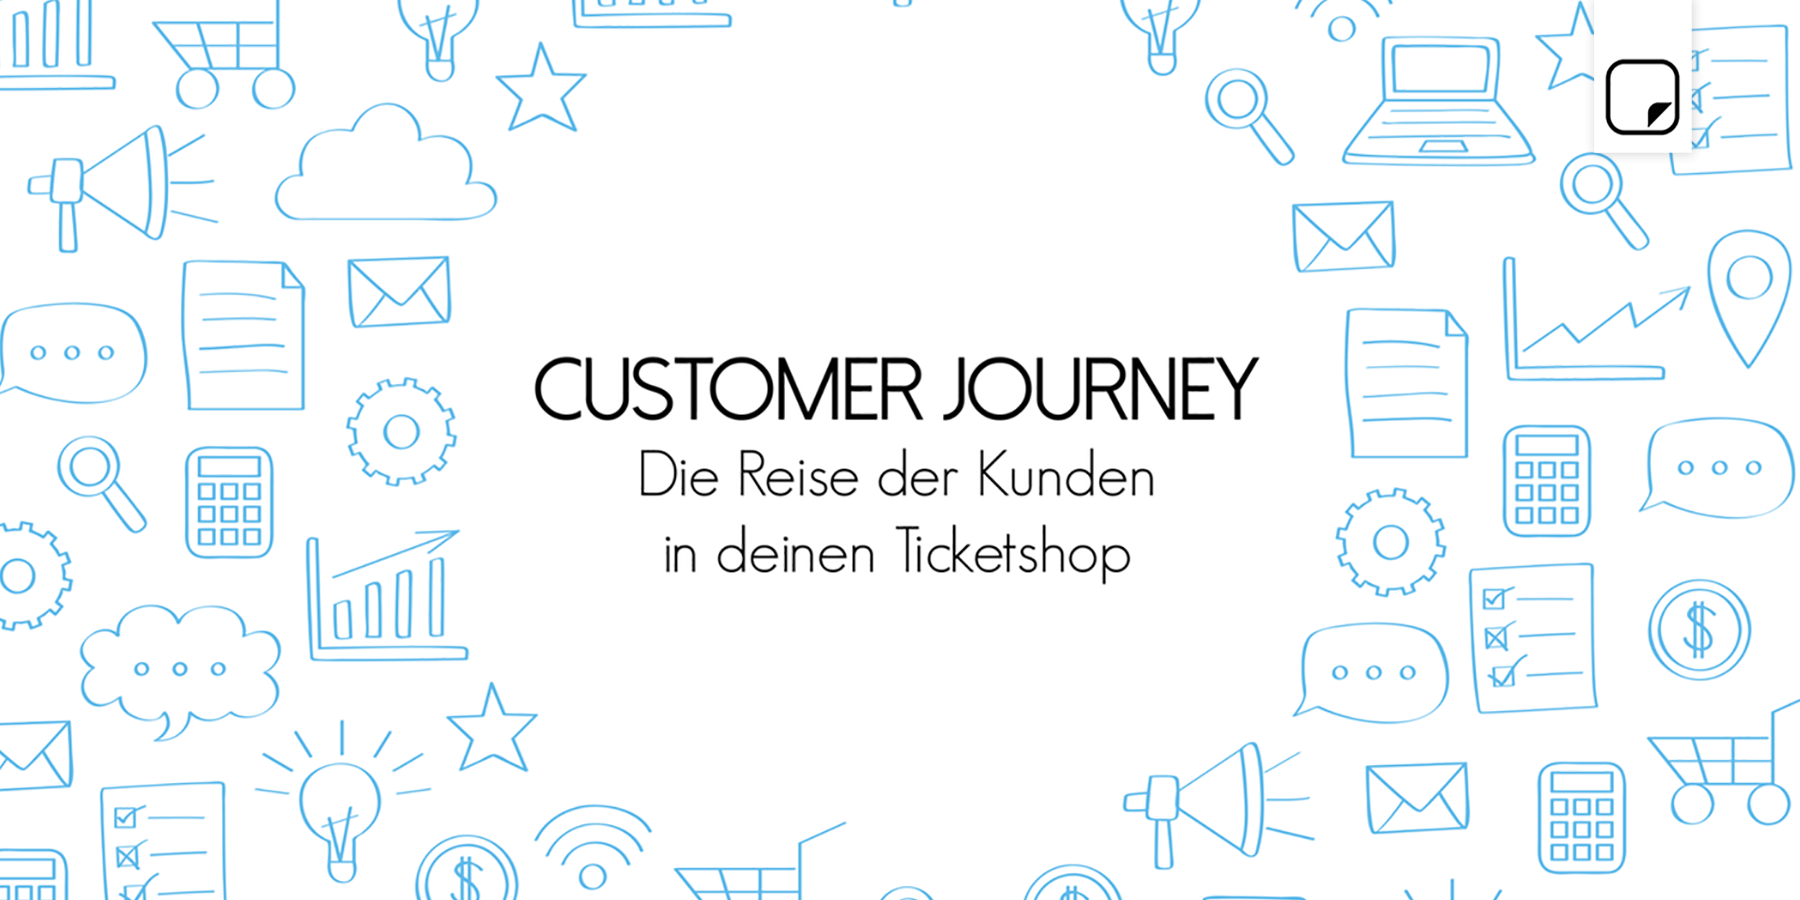 Customer Journey - Die Reise der Kunden in deinen Ticketshop